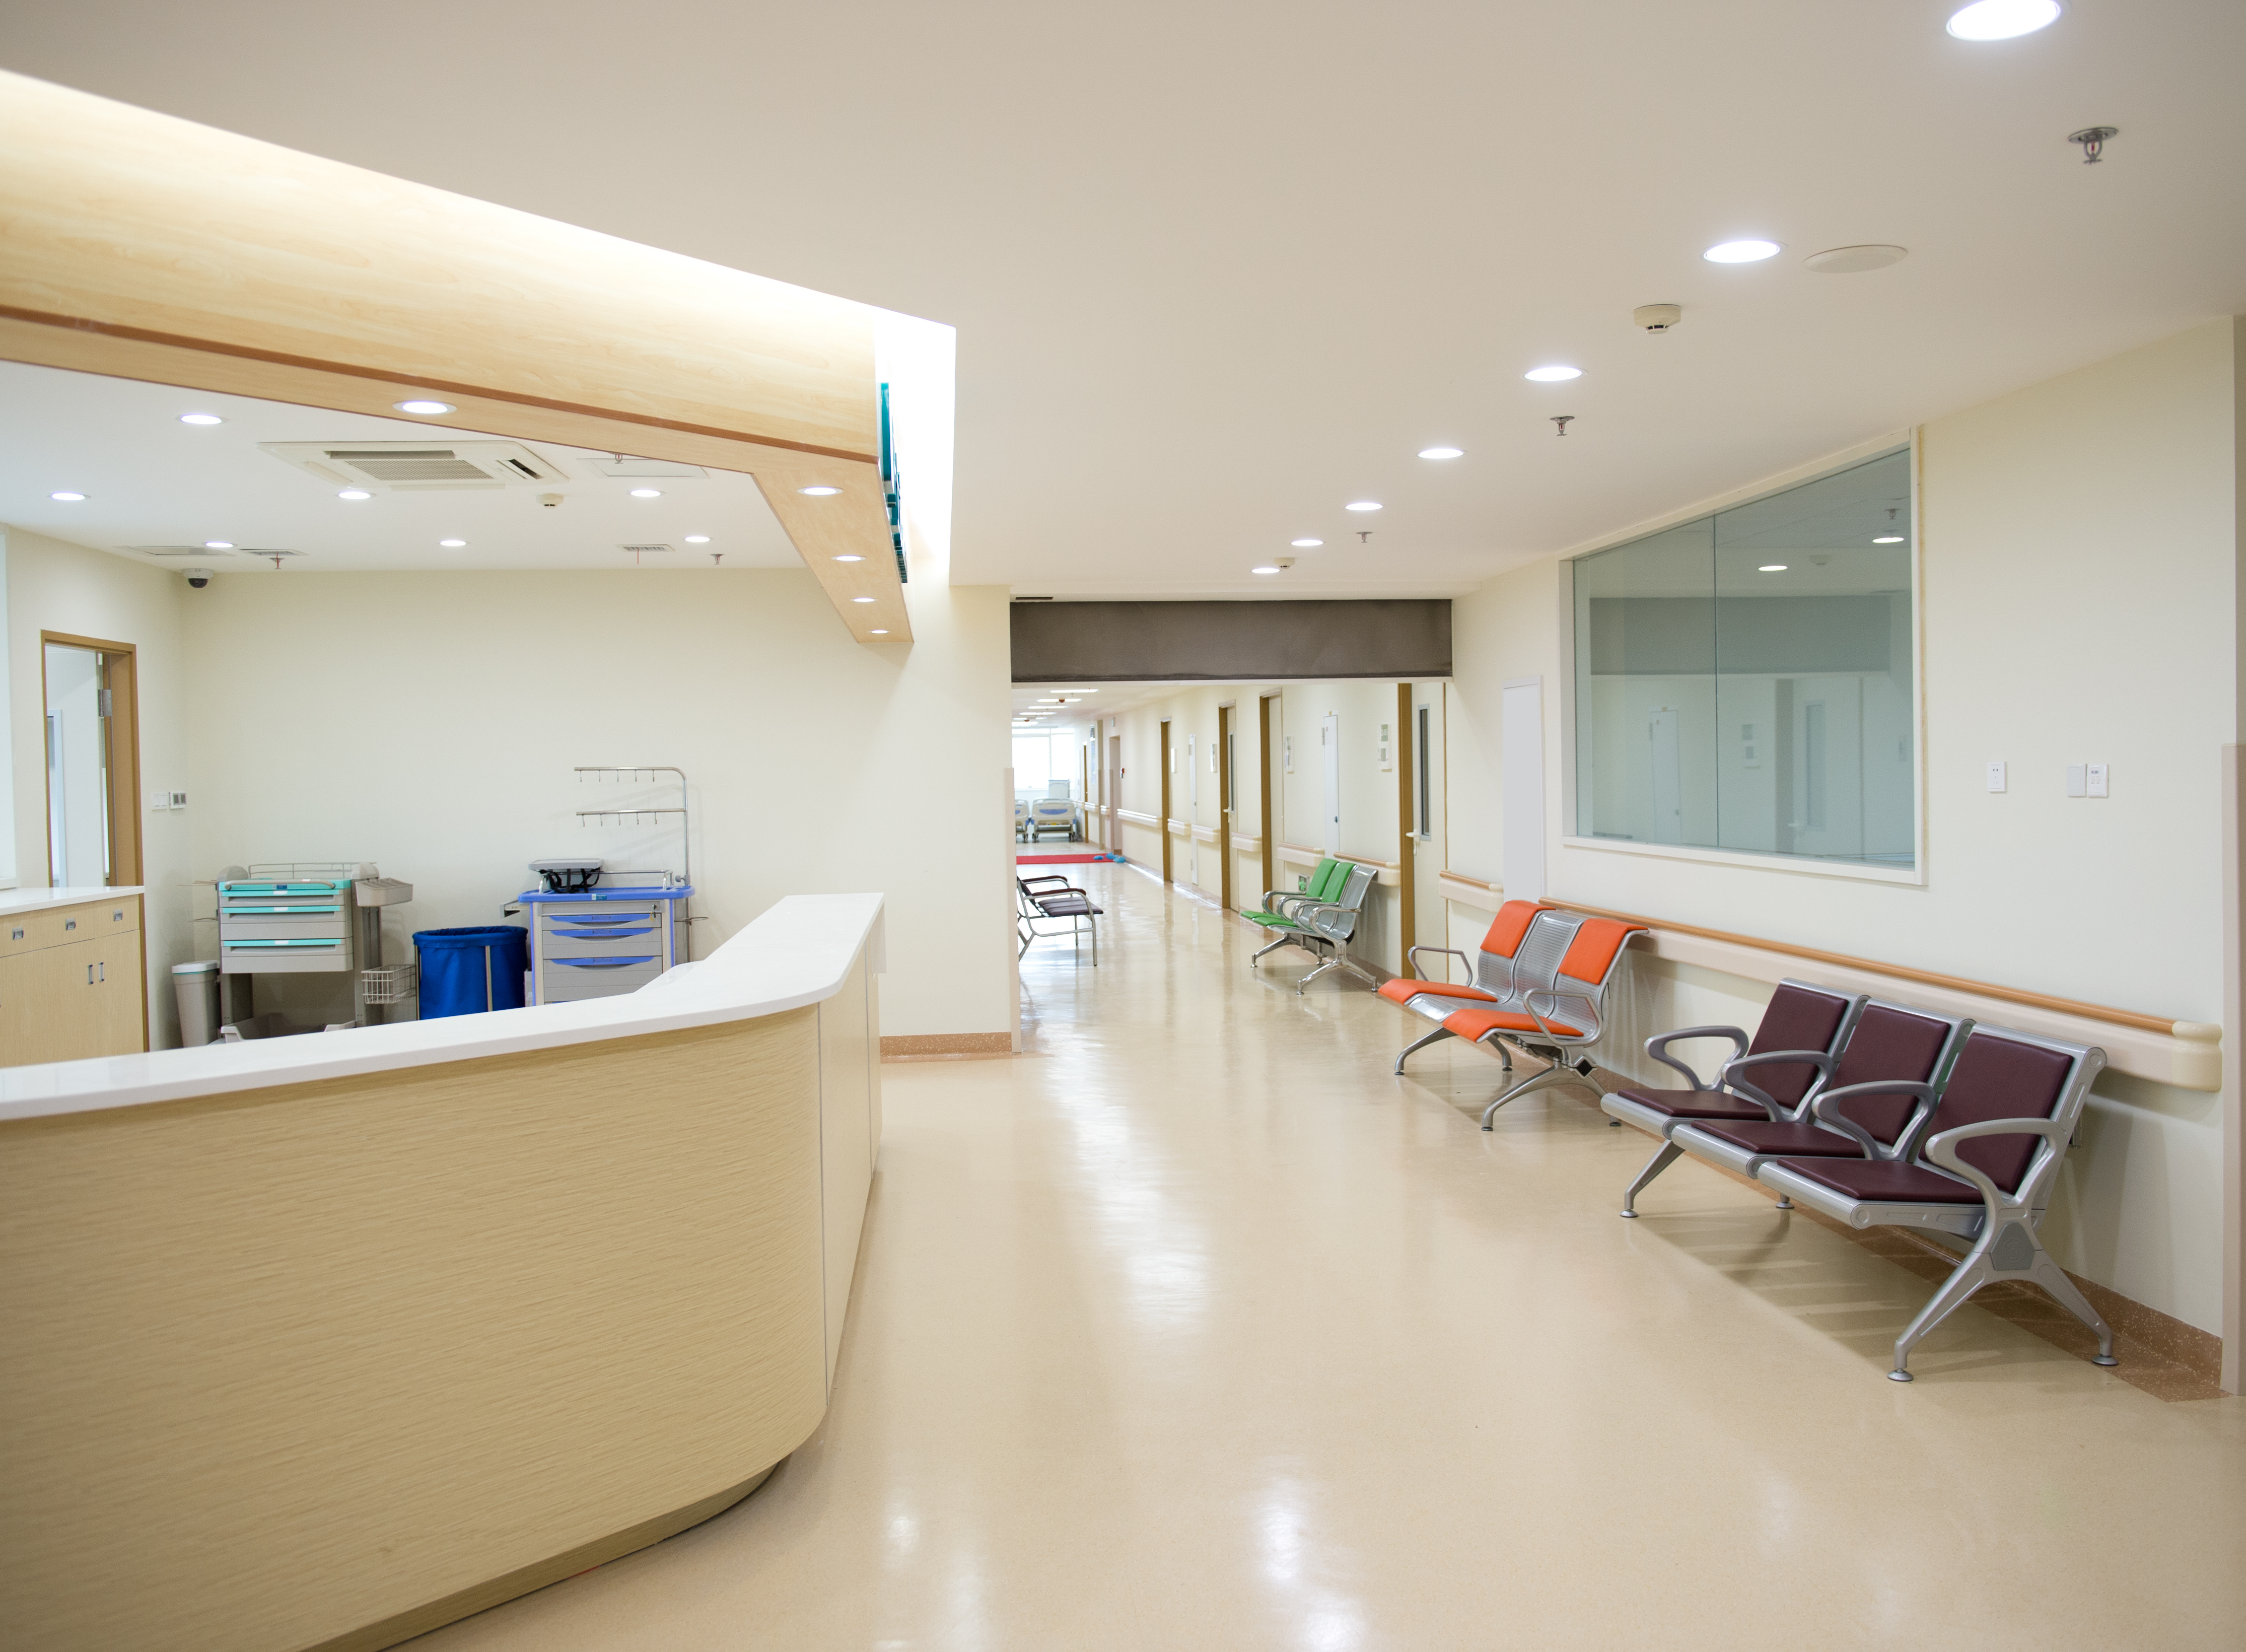 Architecture and design professionals play a role in improving population health.